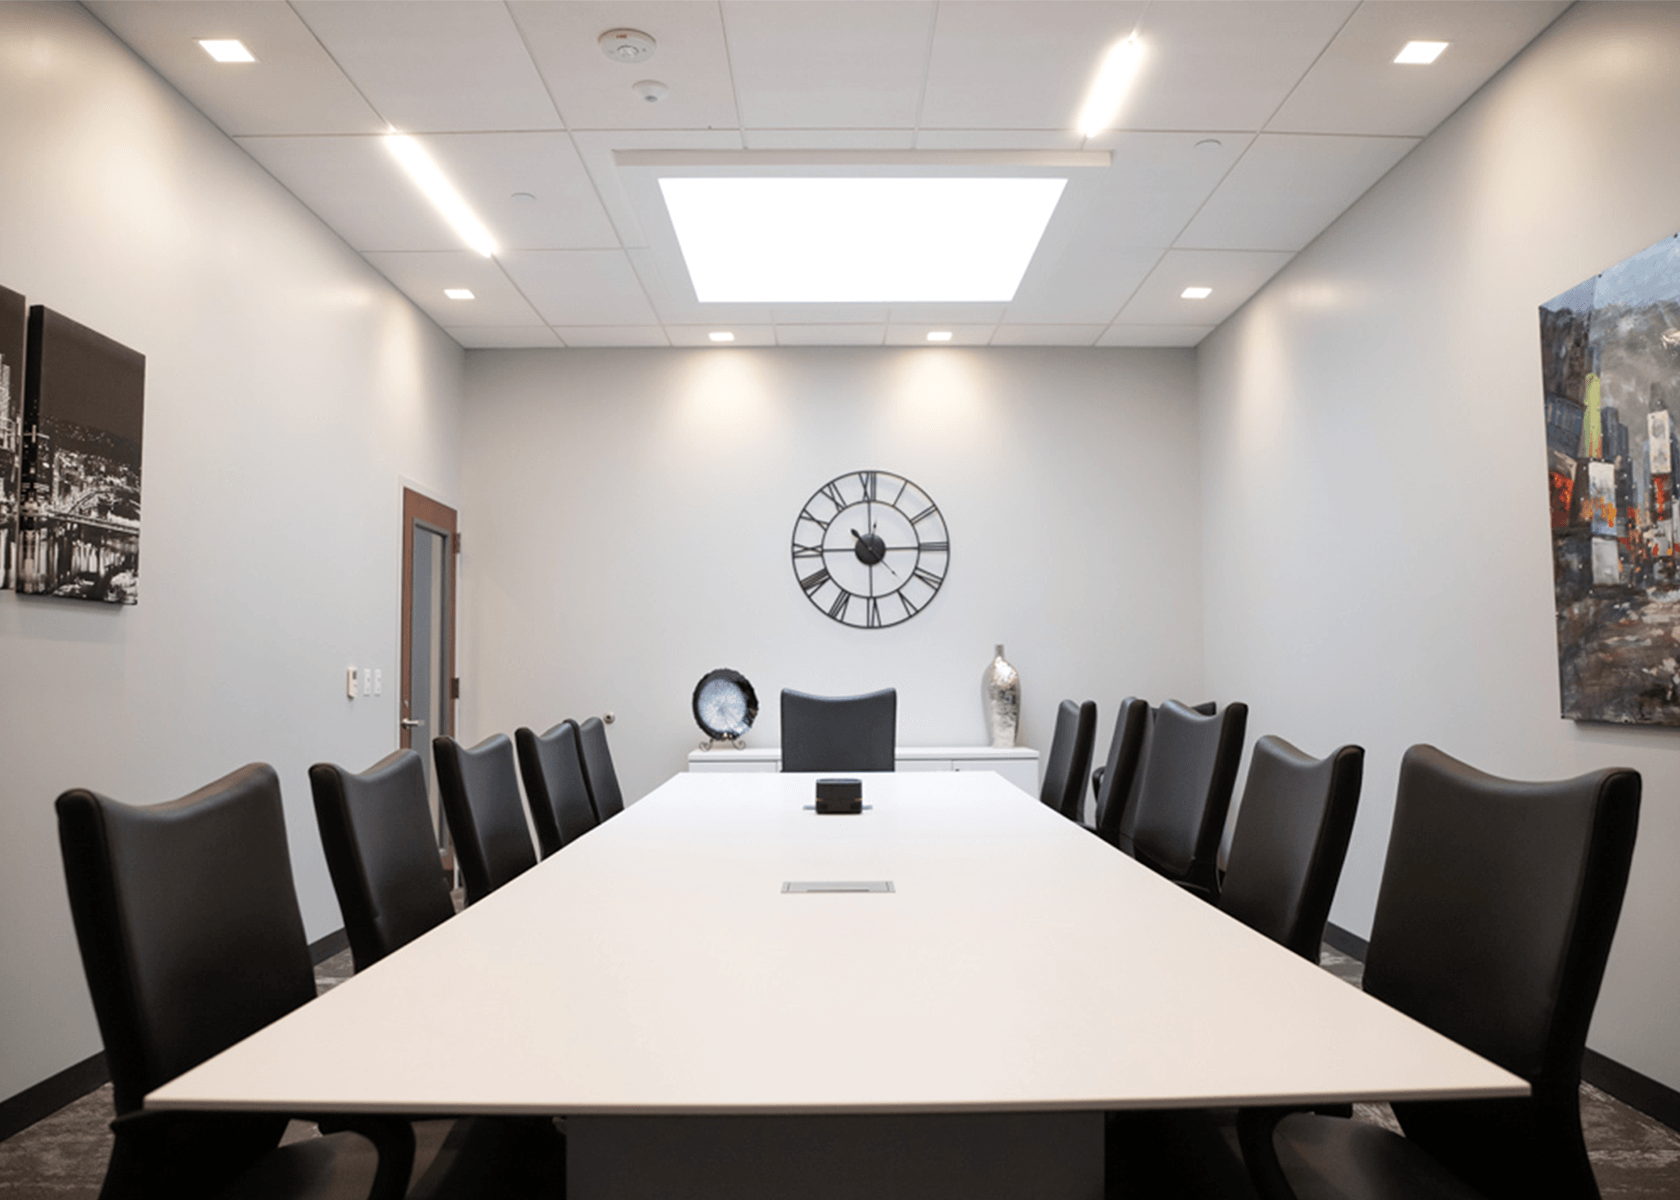 Conference room with a clock and paintings hanging on the walls